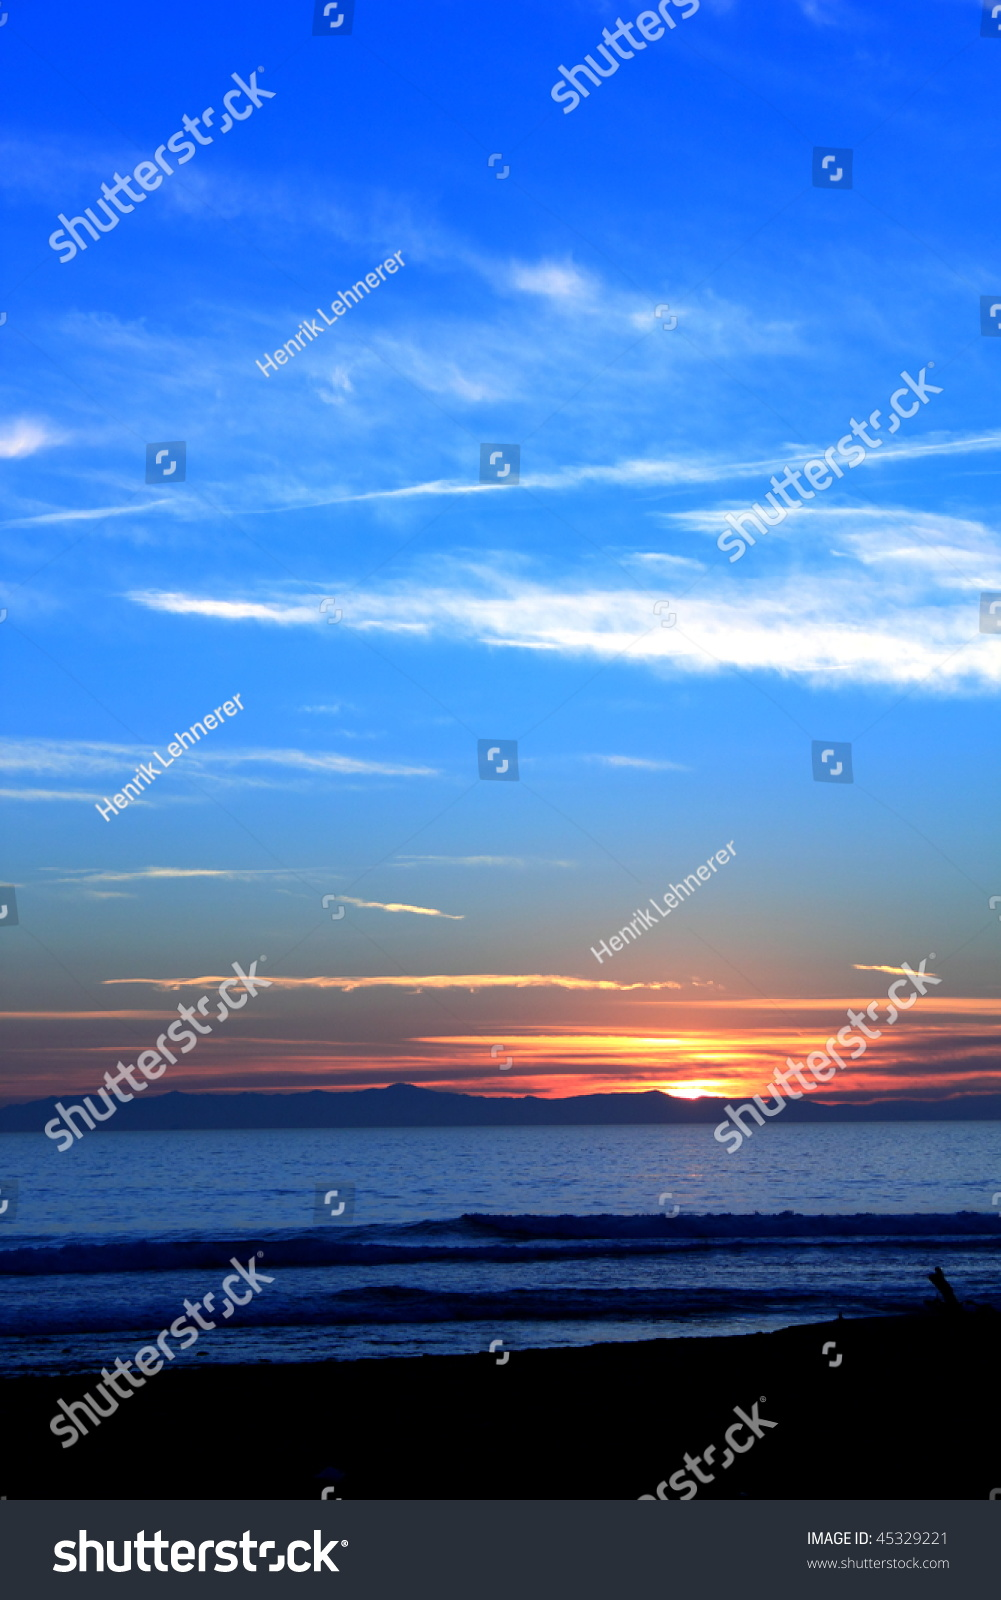 Sunset Channel Islands Harbor: Beautiful Sunset Over The Ocen At Ventura Beach With